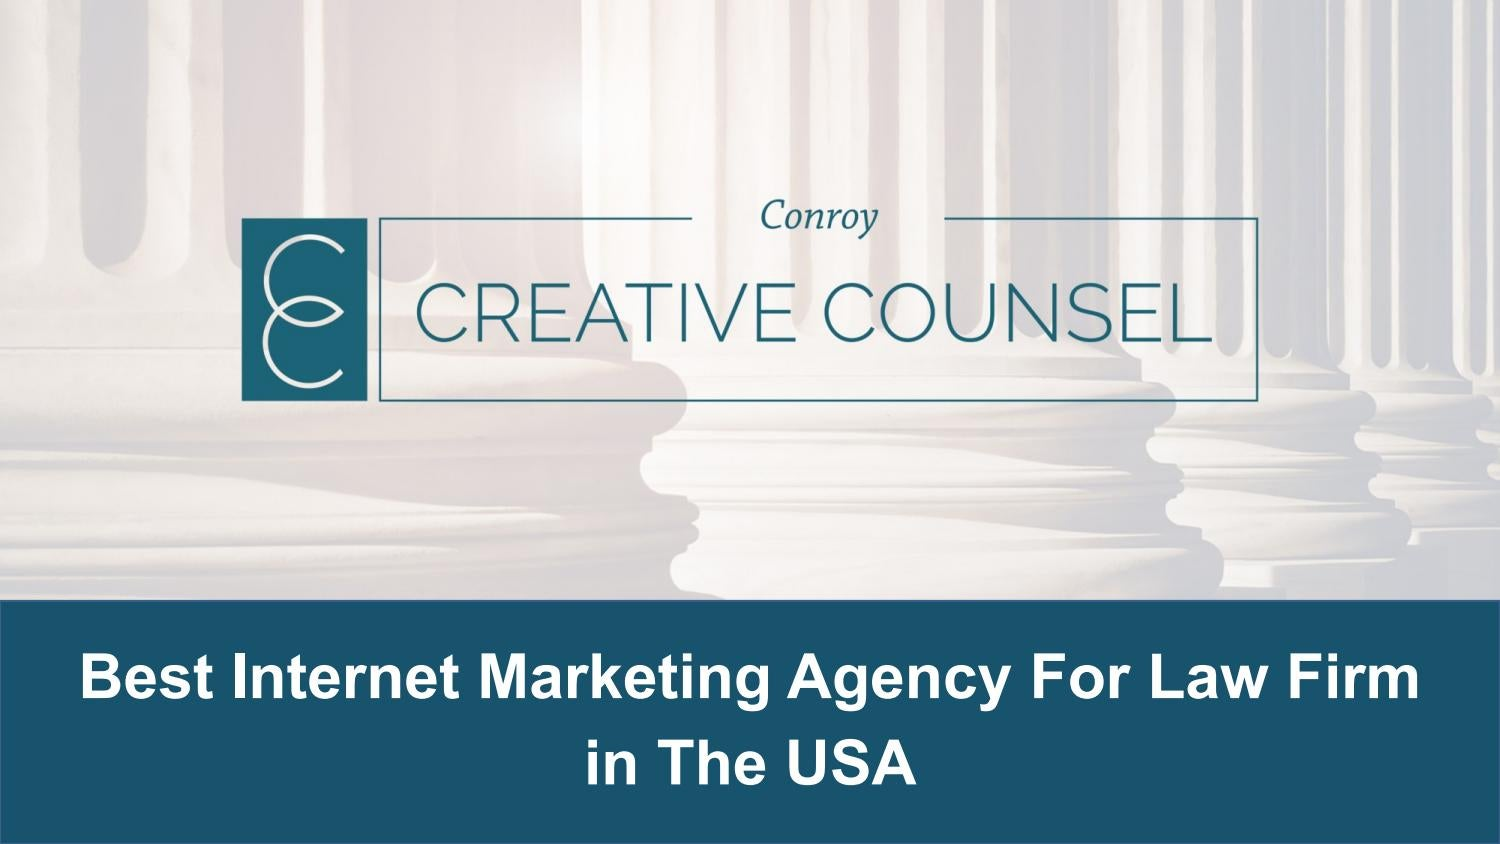 Best Internet Marketing Agency For Law Firm in The USA